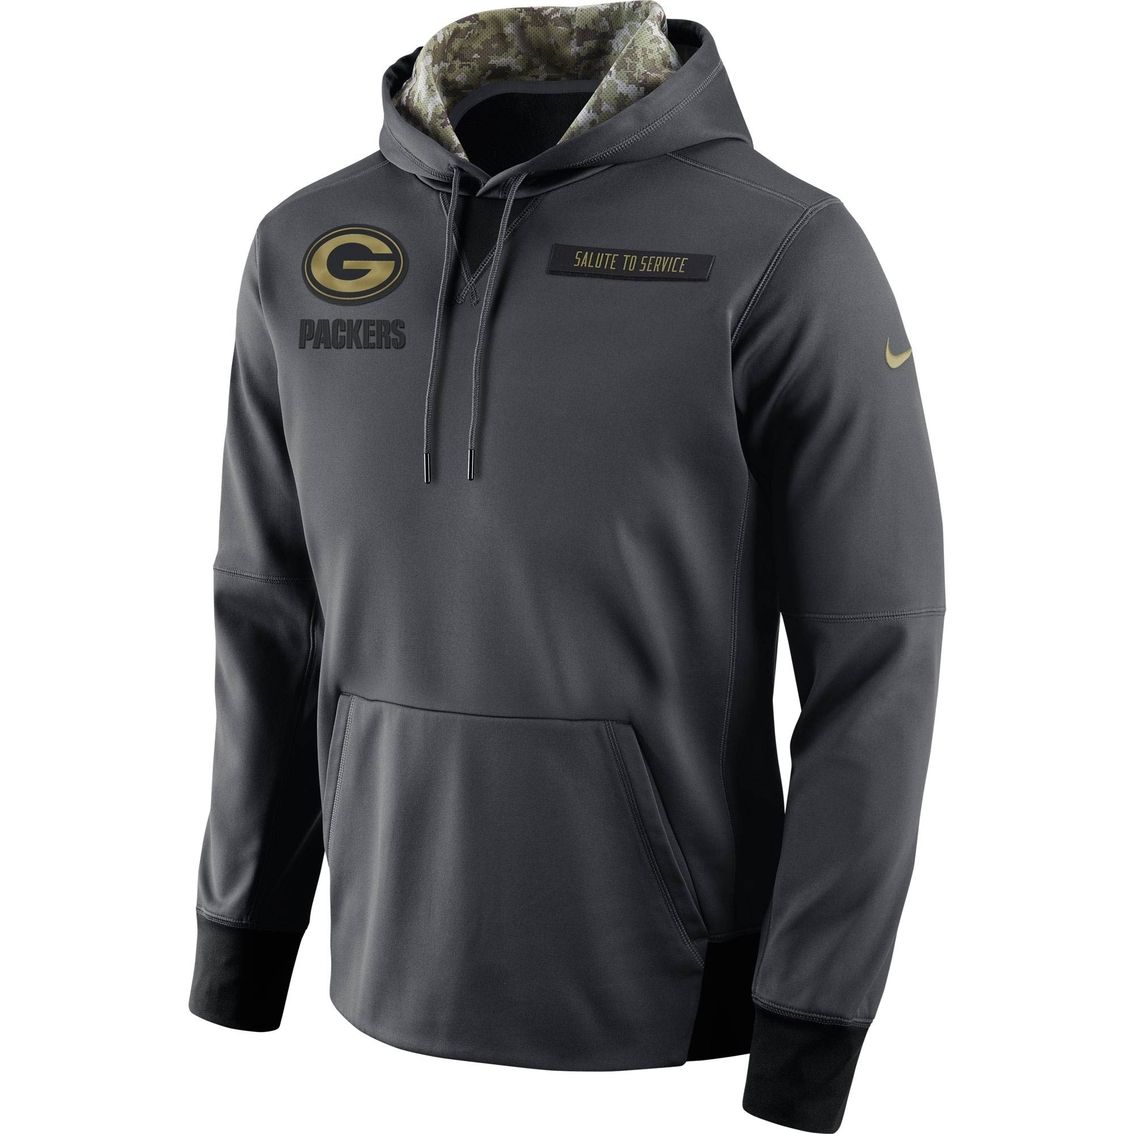 Nike Nfl Green Bay Packers Salute To Service Hoodie